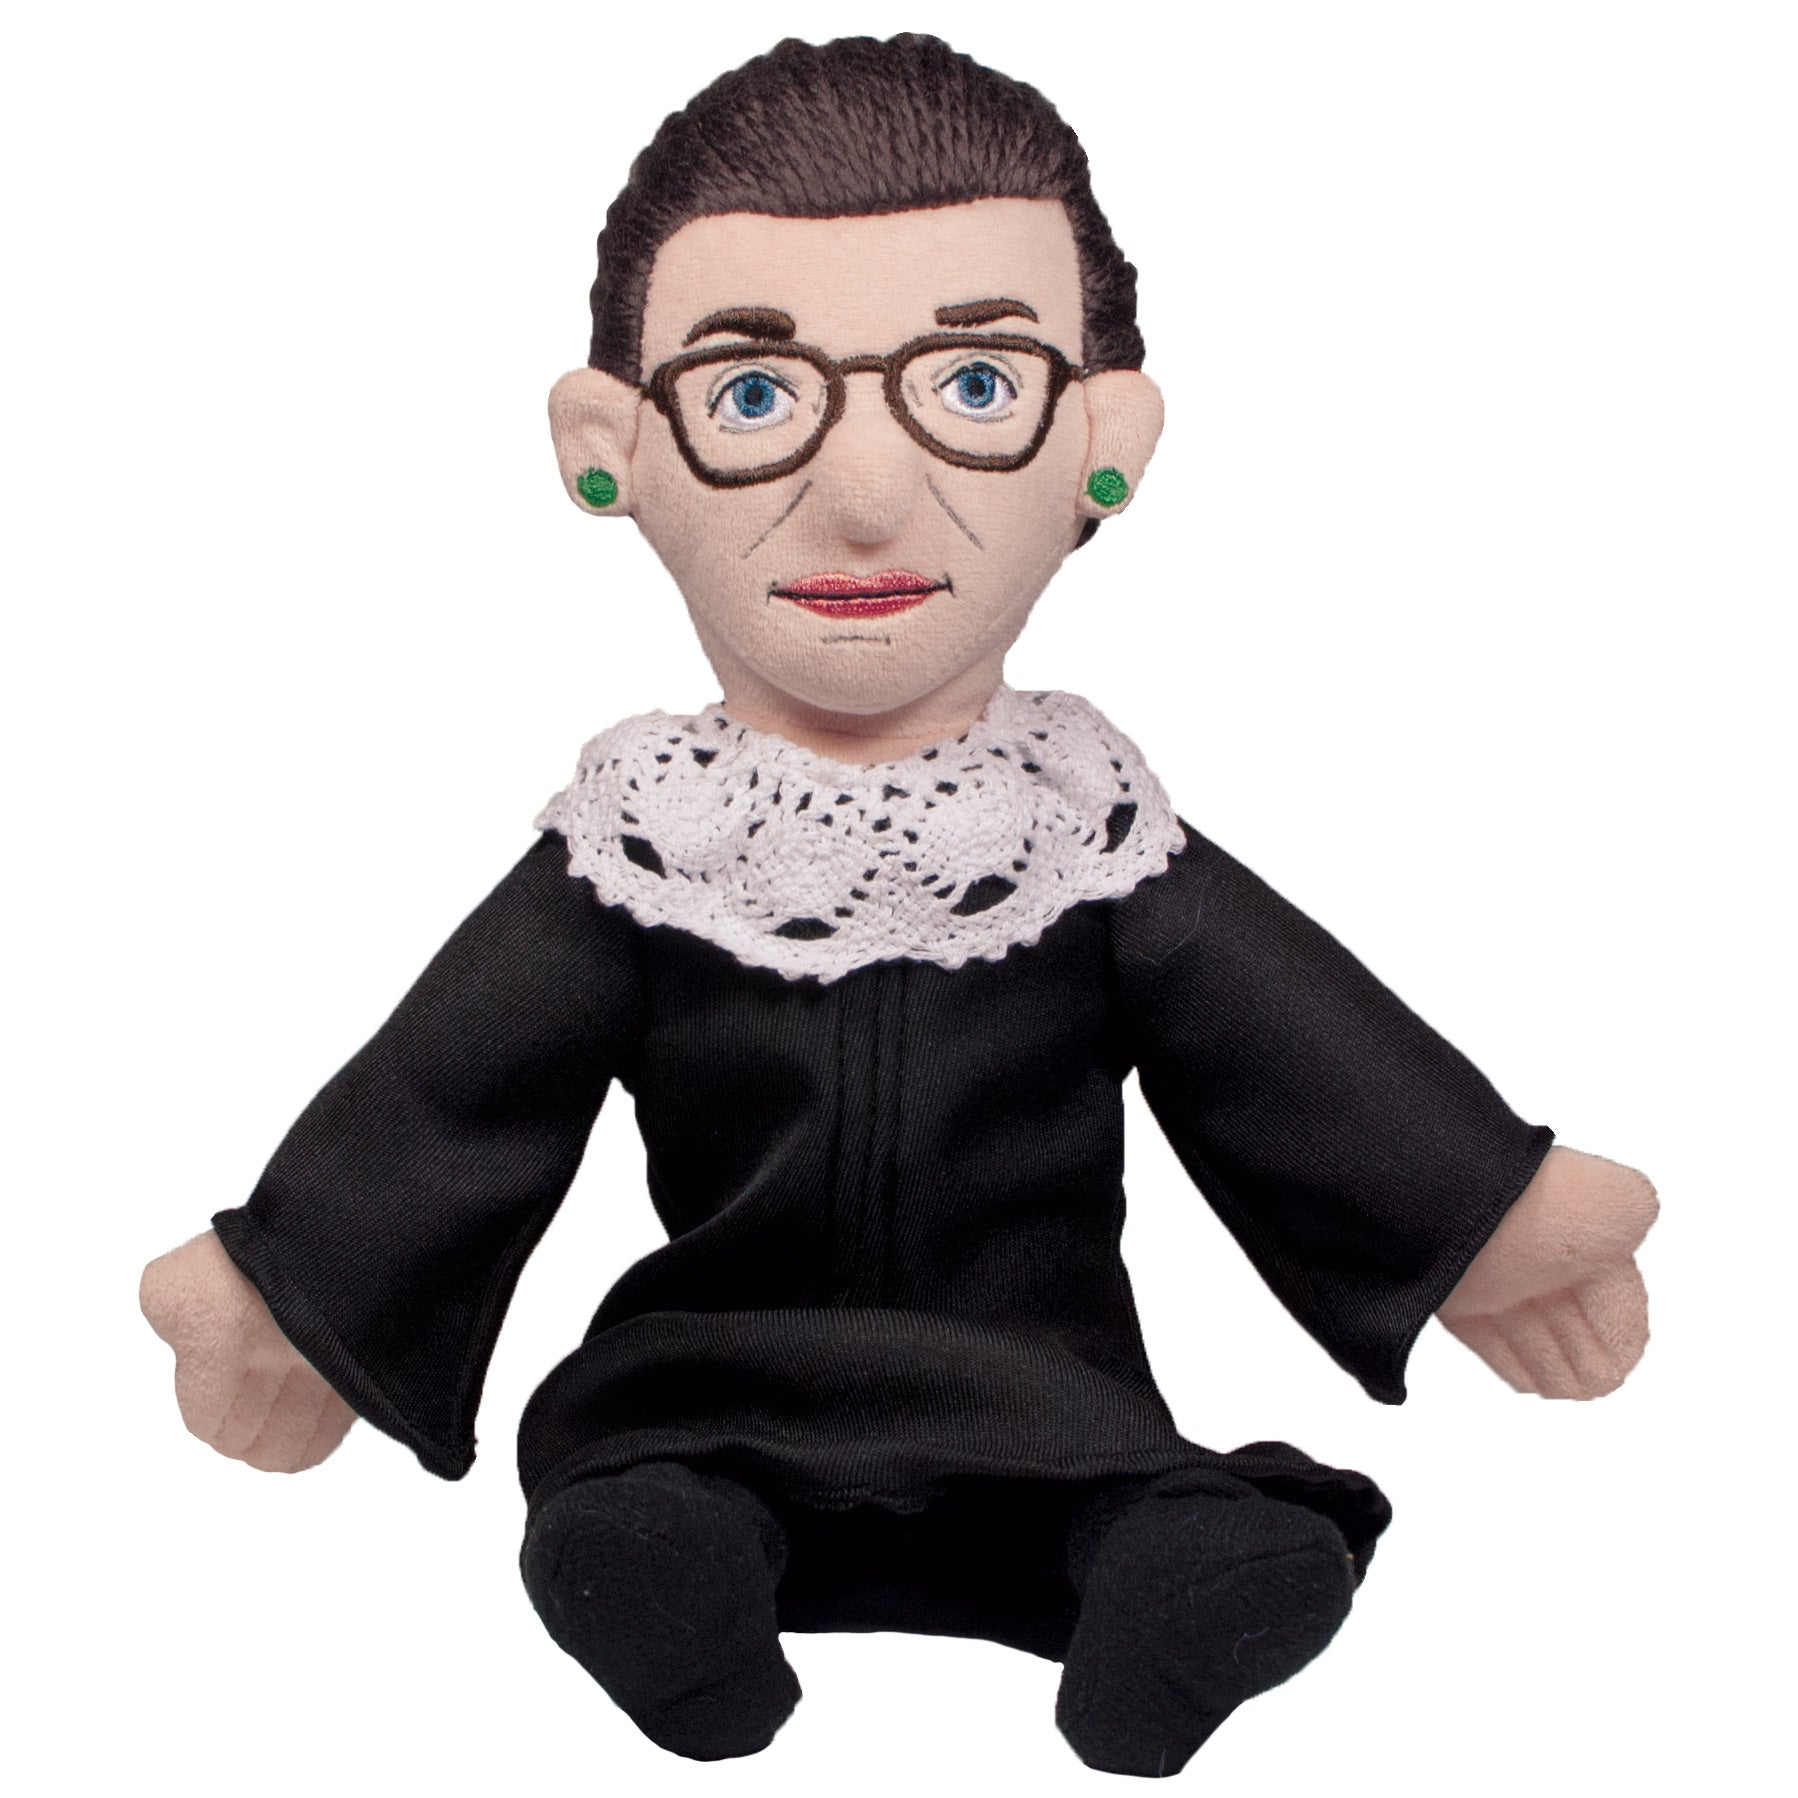 Ginsburg Little Thinker